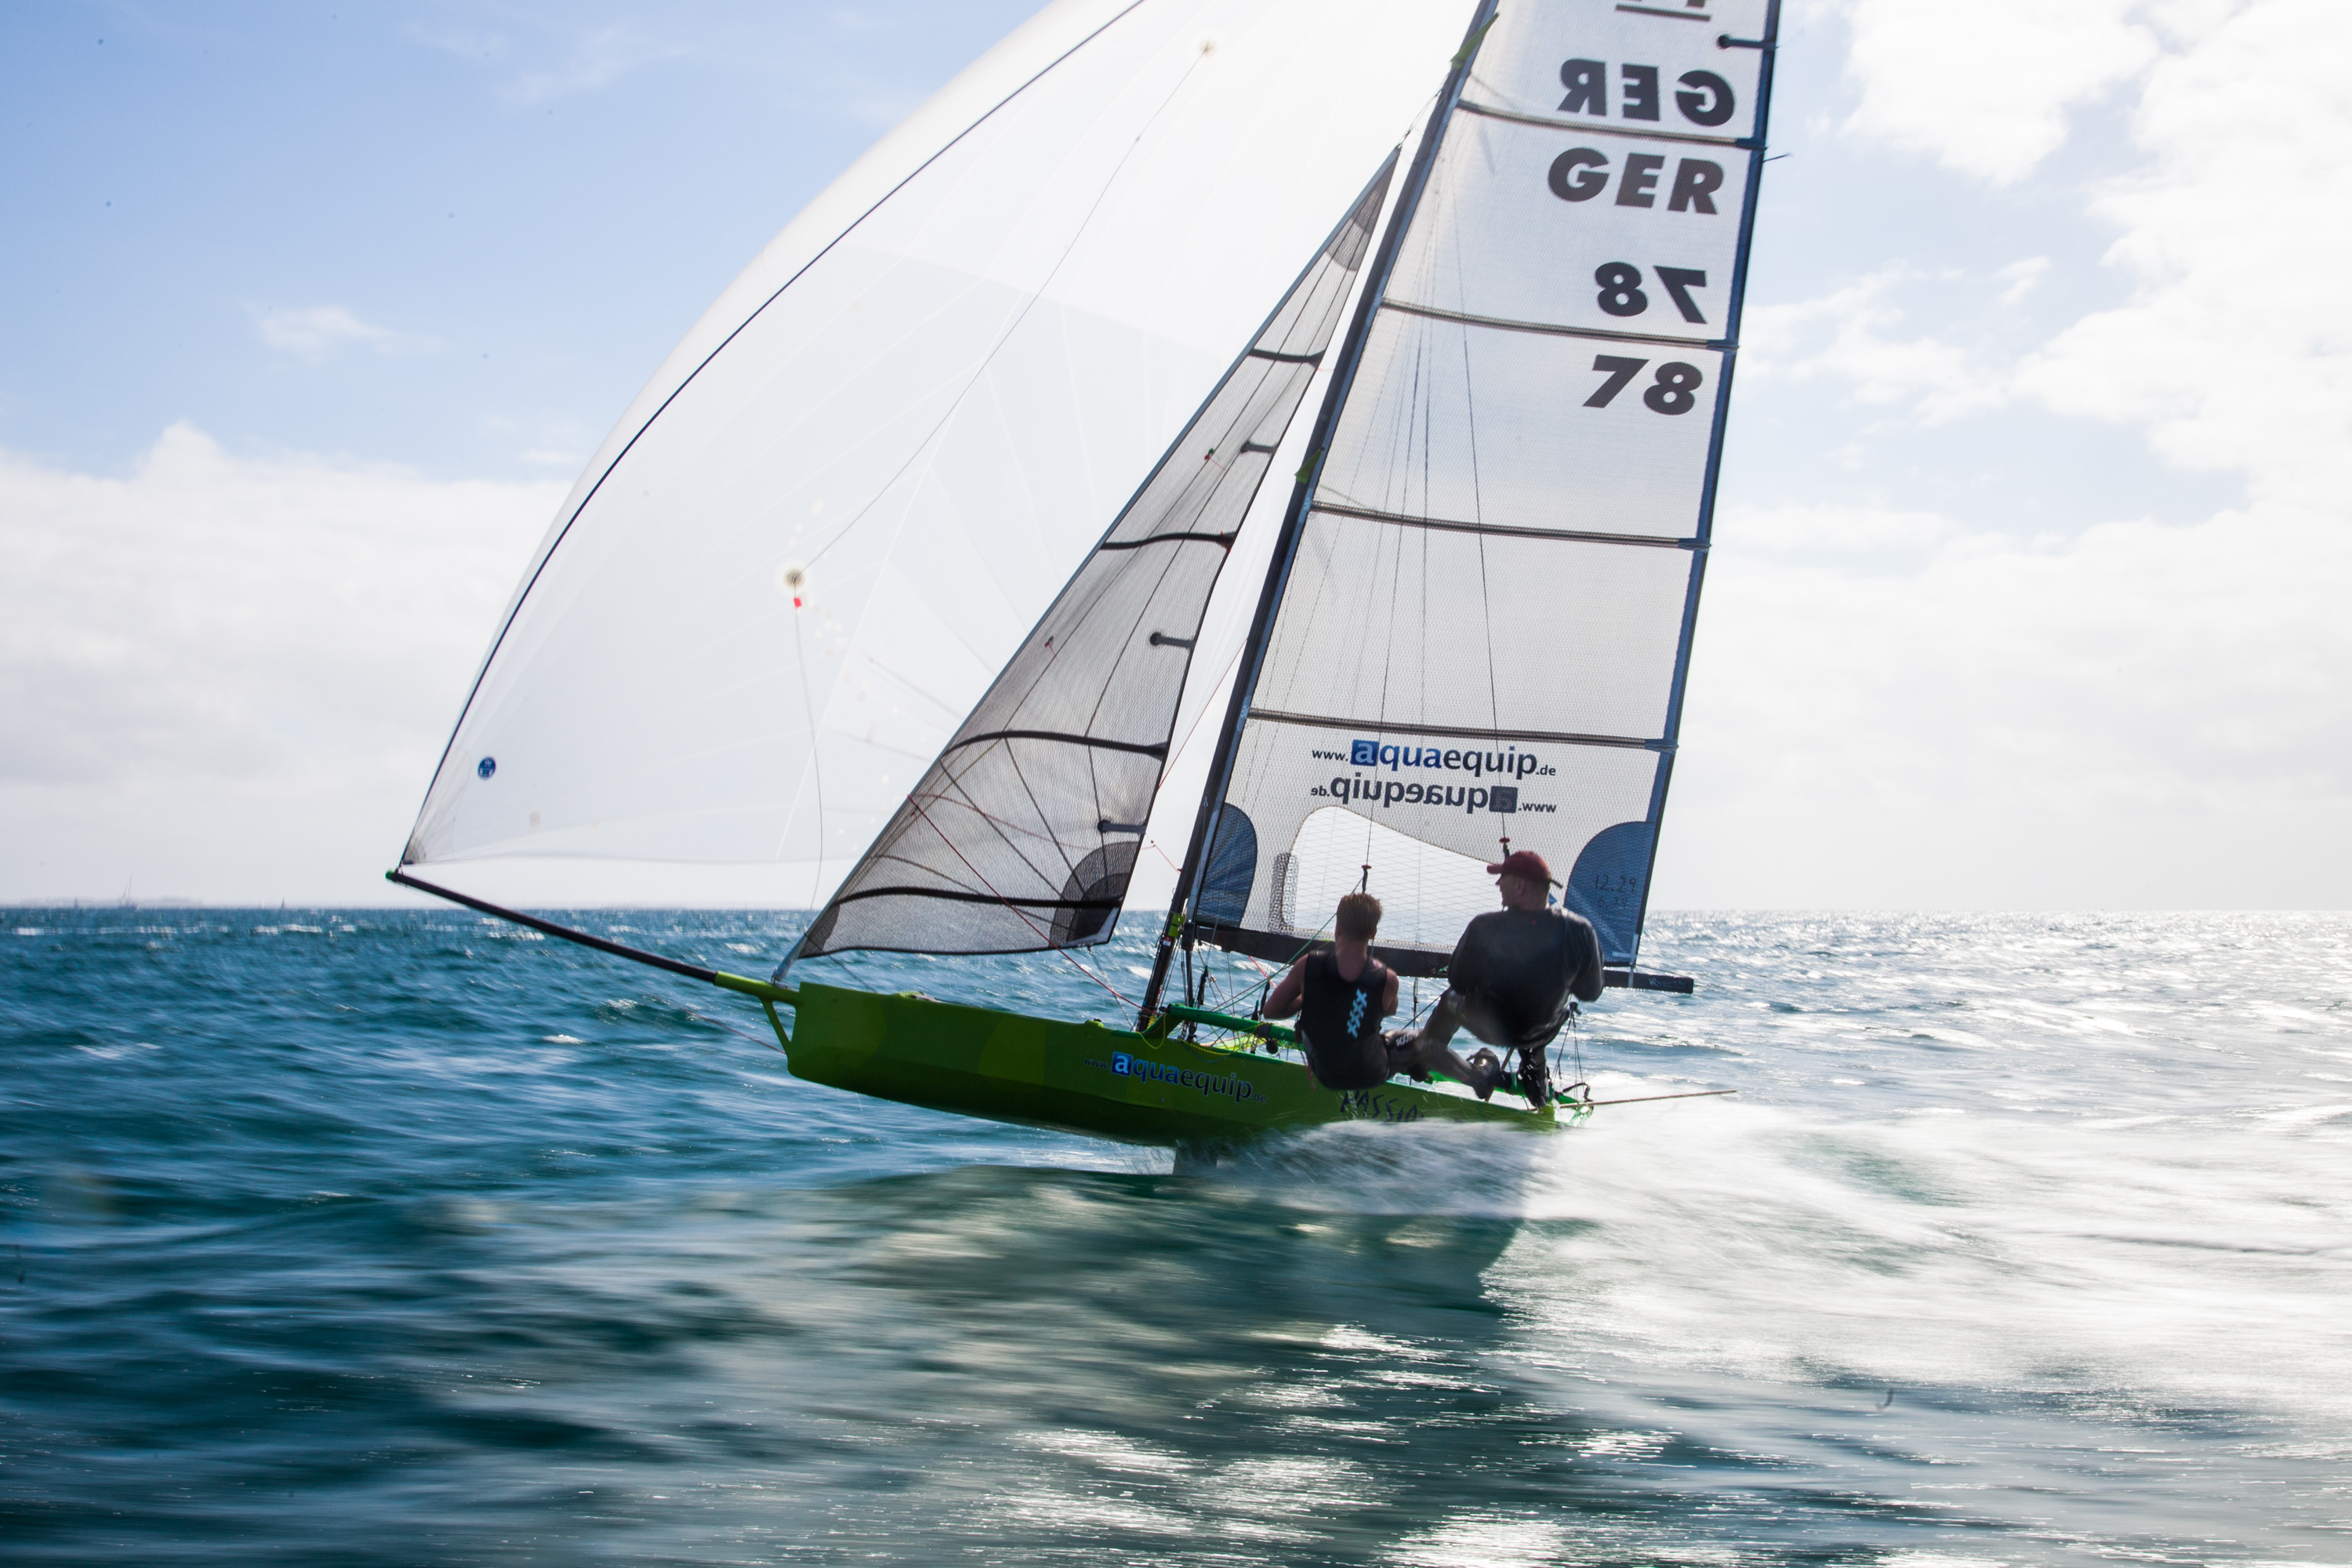 International 14 Foot Skiff Worlds